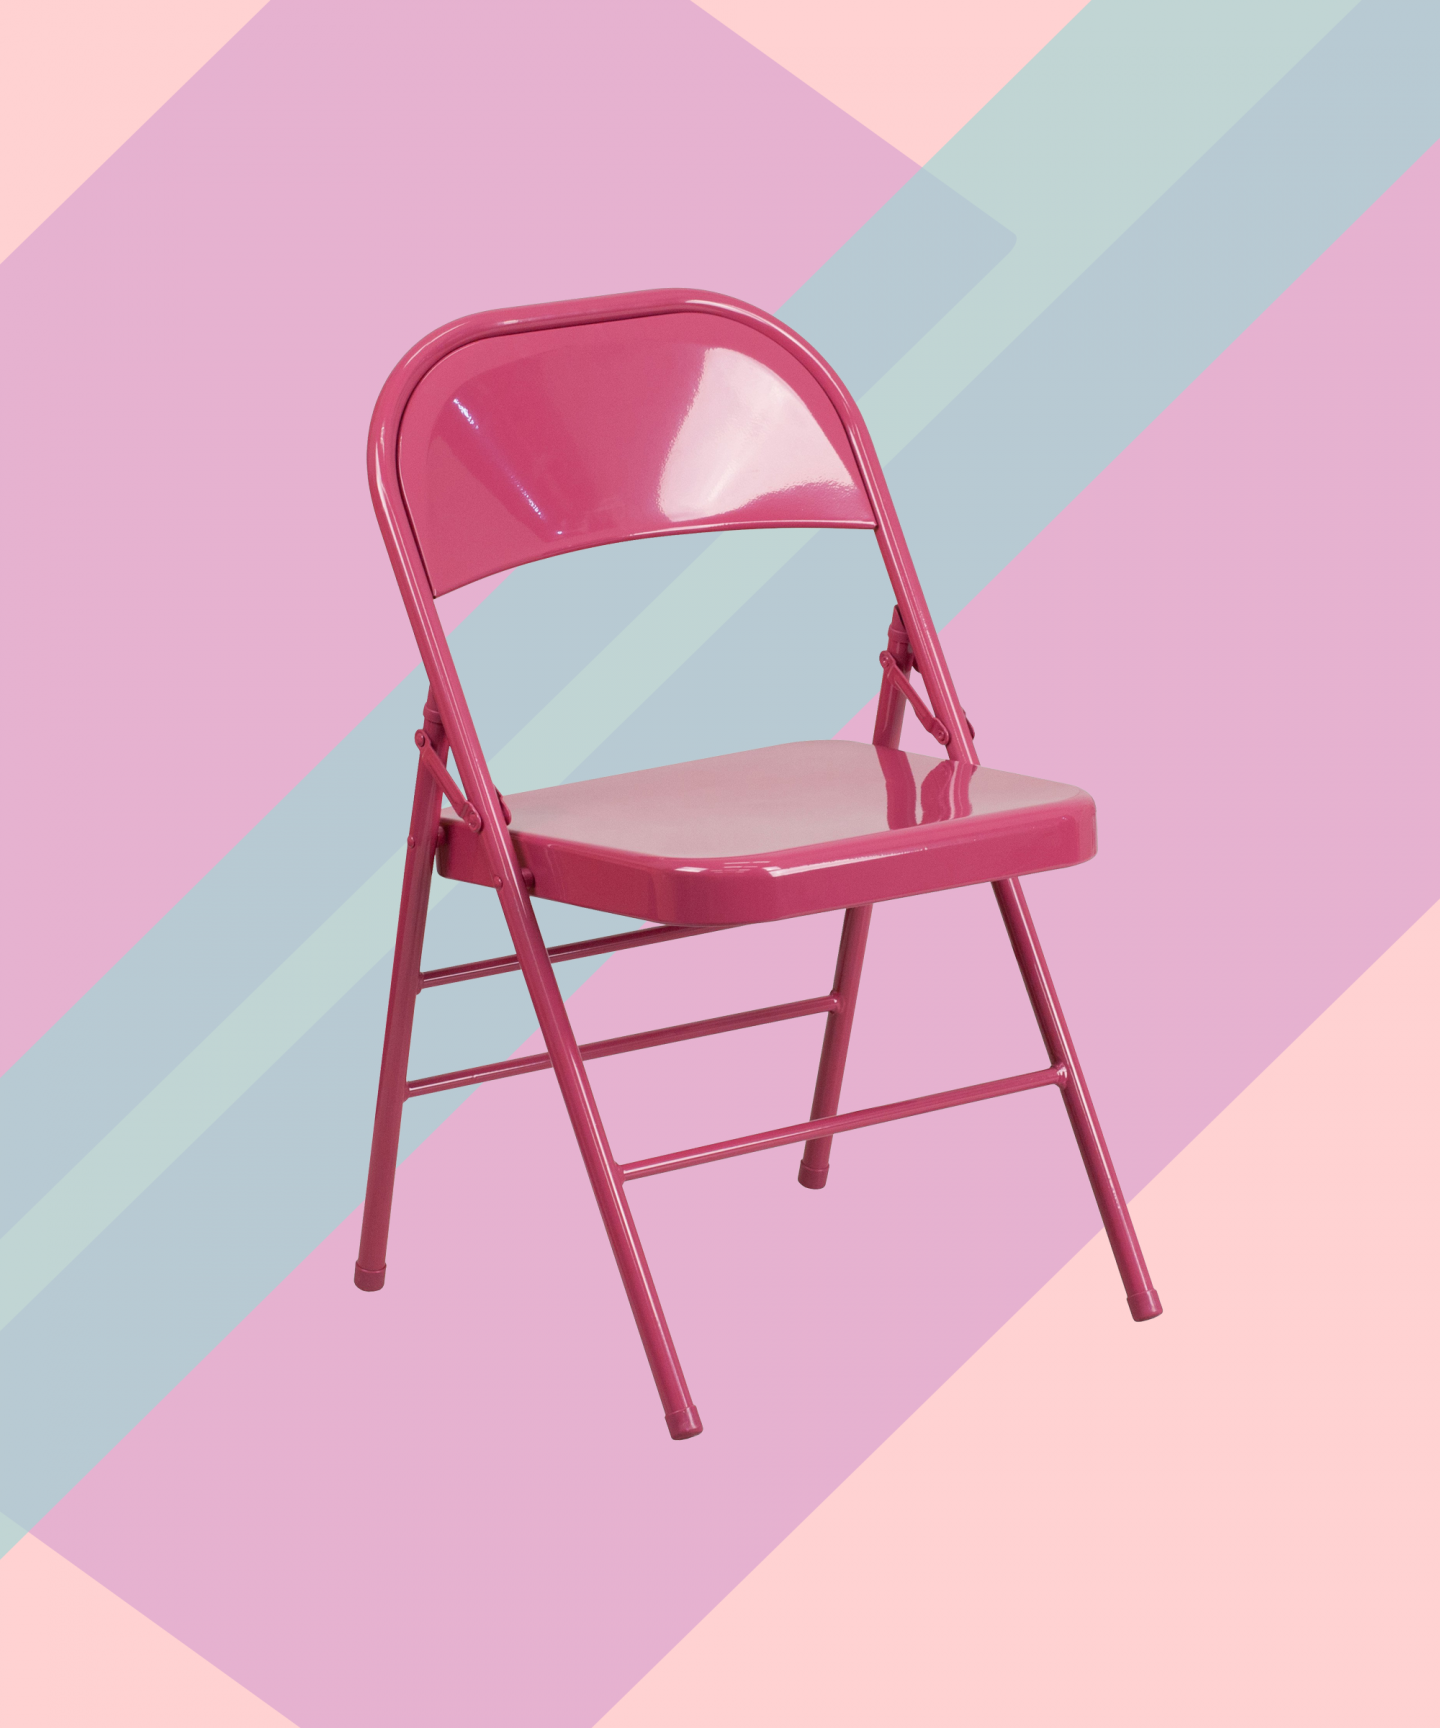 Marvelous This Is The Home Product You Need To Have A Fun Summer Inzonedesignstudio Interior Chair Design Inzonedesignstudiocom